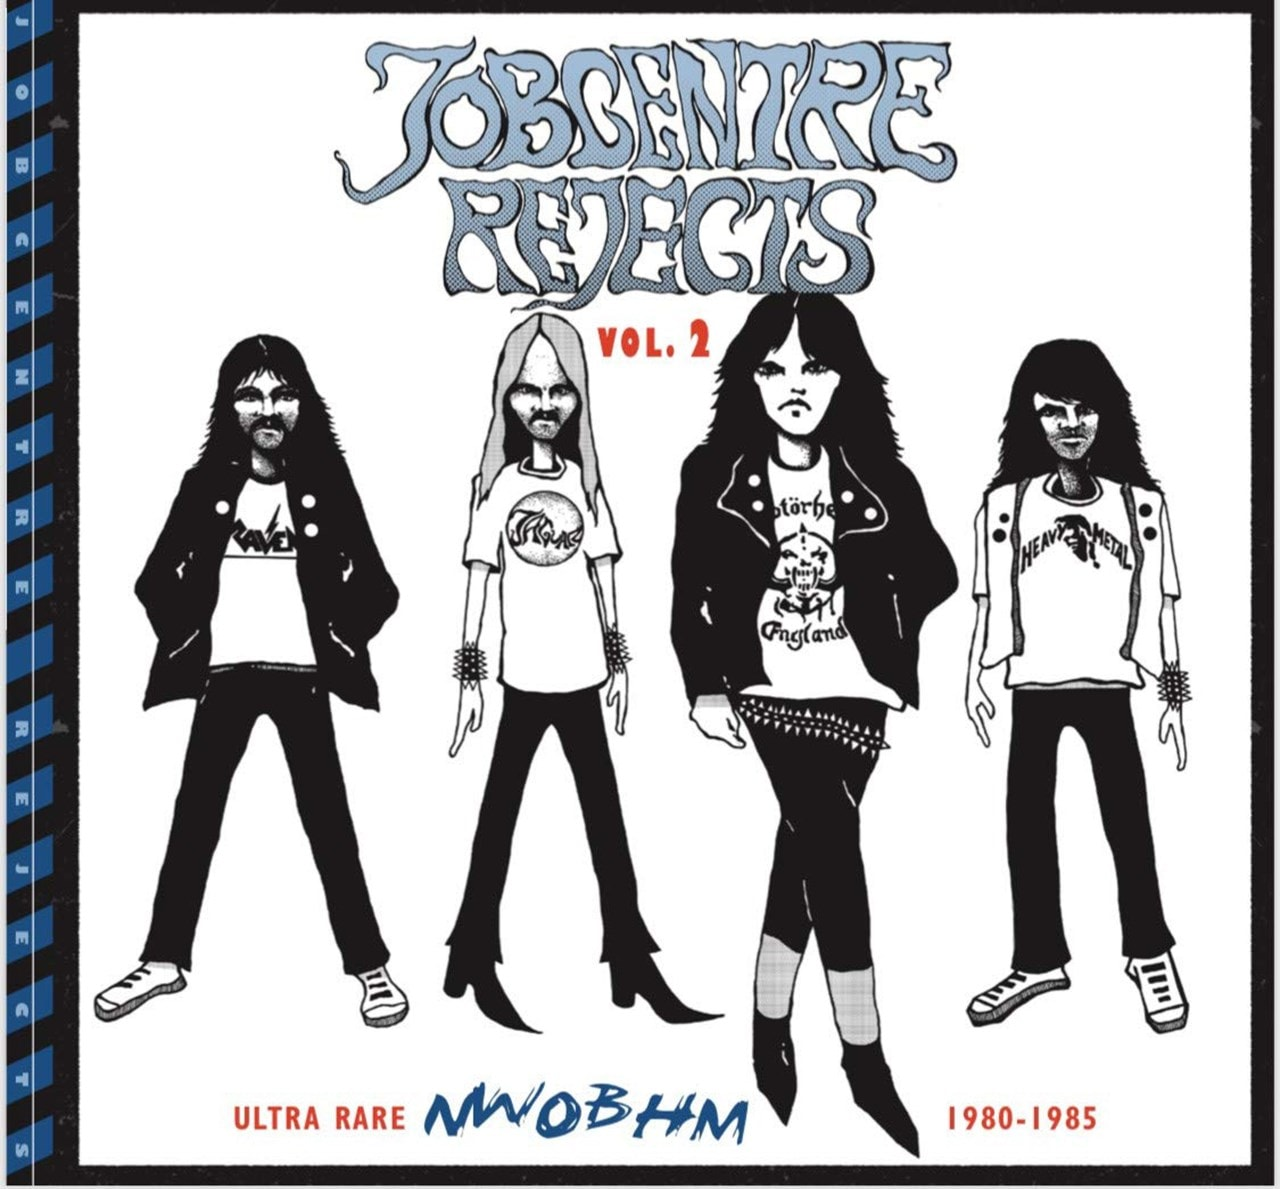 Jobcentre Rejects: Ultra Rare NWOBHM 1980-1985 - Volume 2 - 1